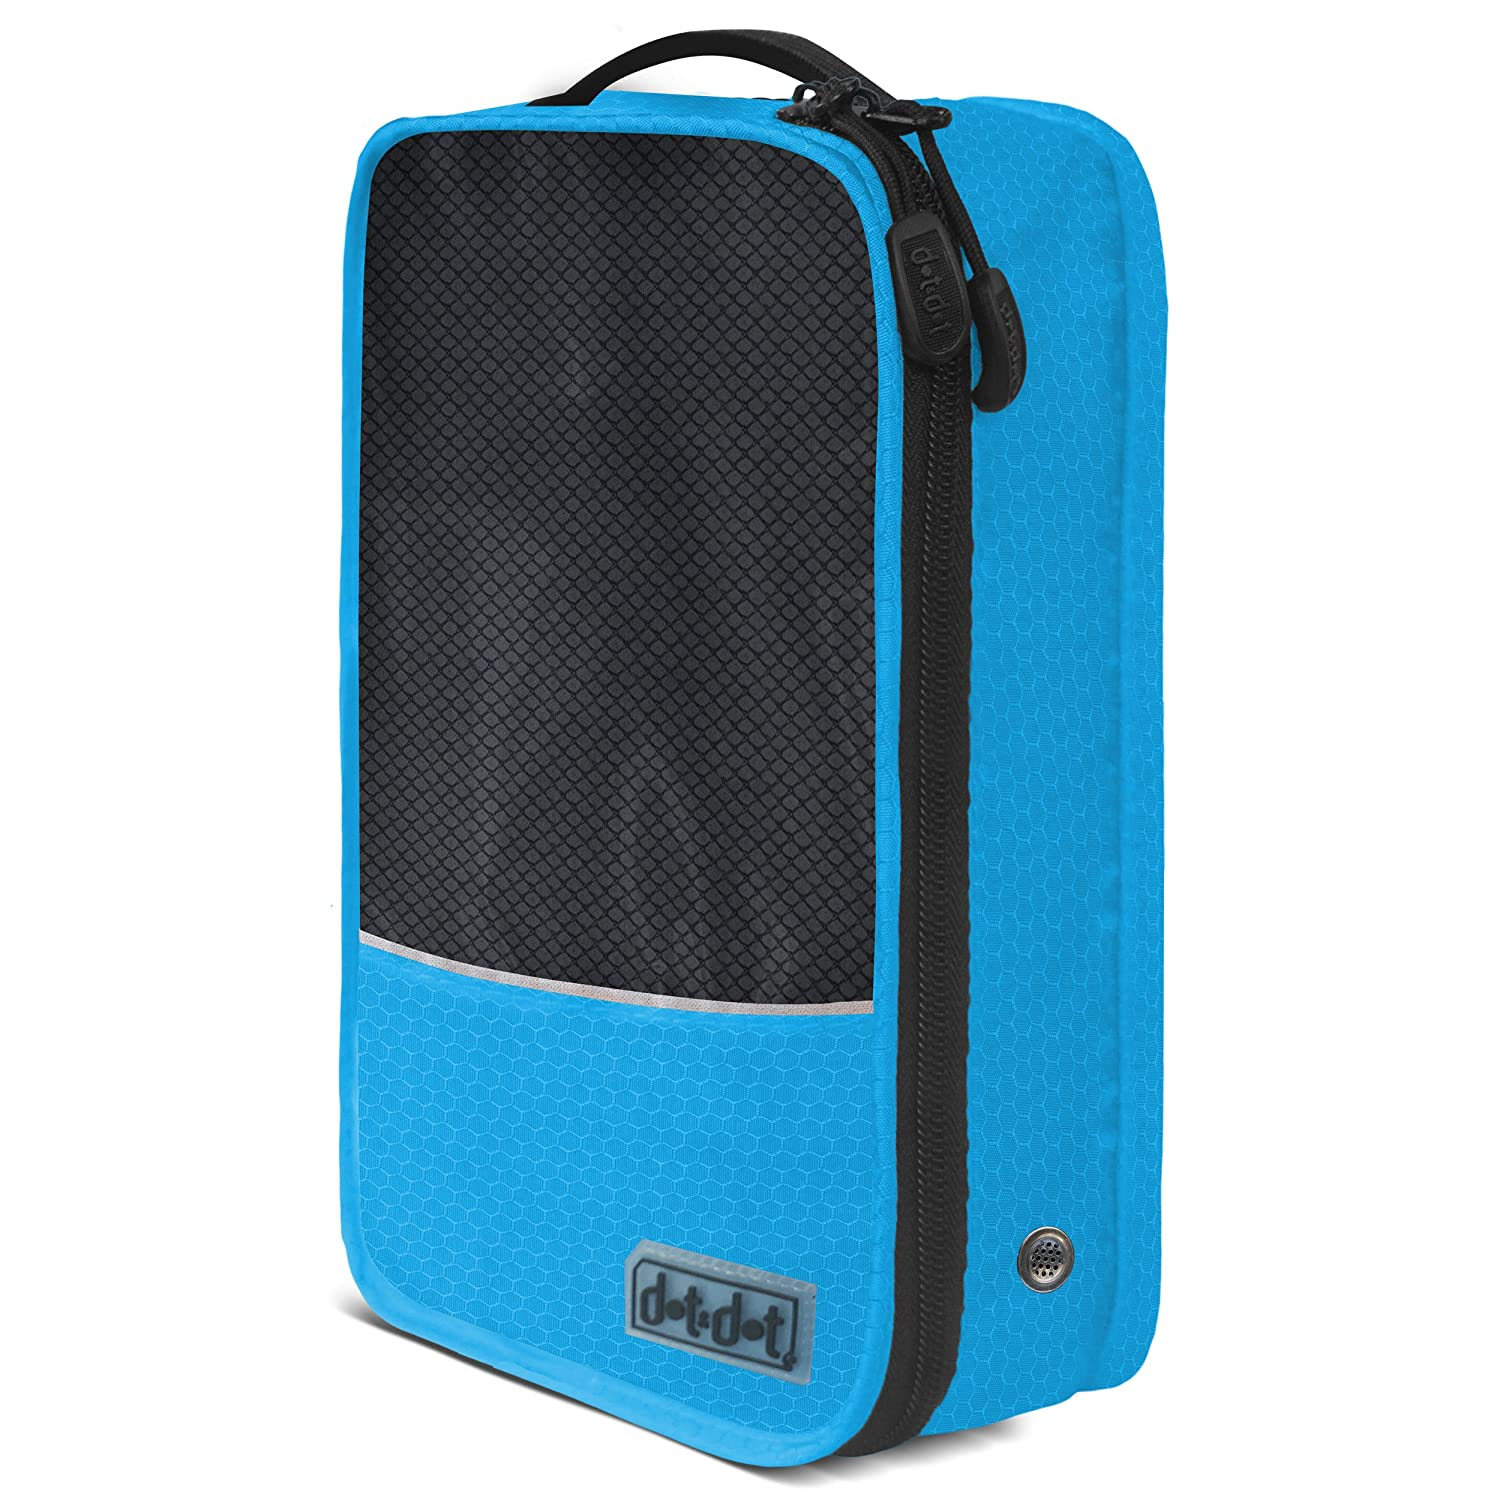 Dot& Dot - Shoe Bag - Convenient Packing System For Your Shoes When Traveling 10449653